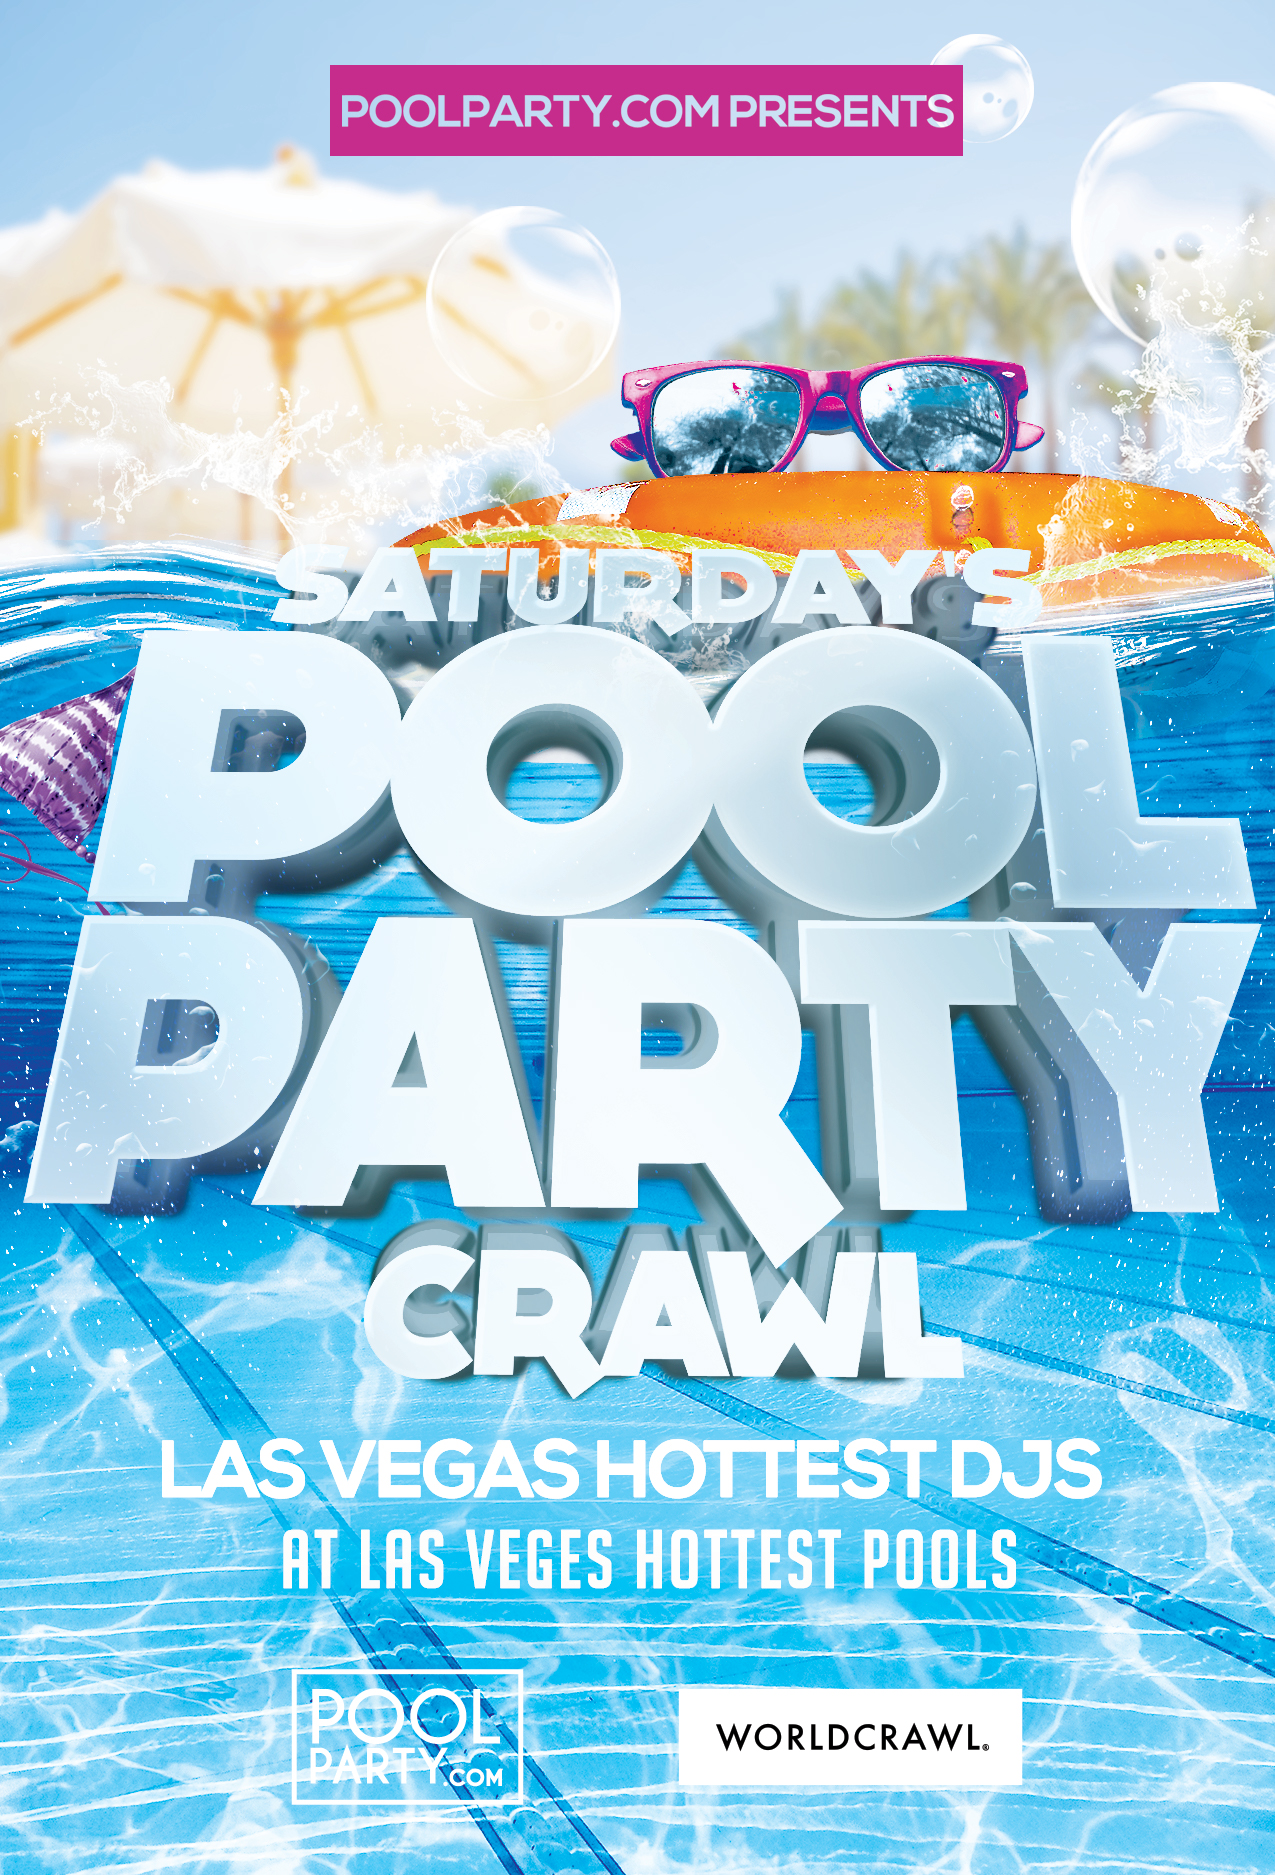 Saturday's PLATINUM Pool Party Crawl (August 10th)